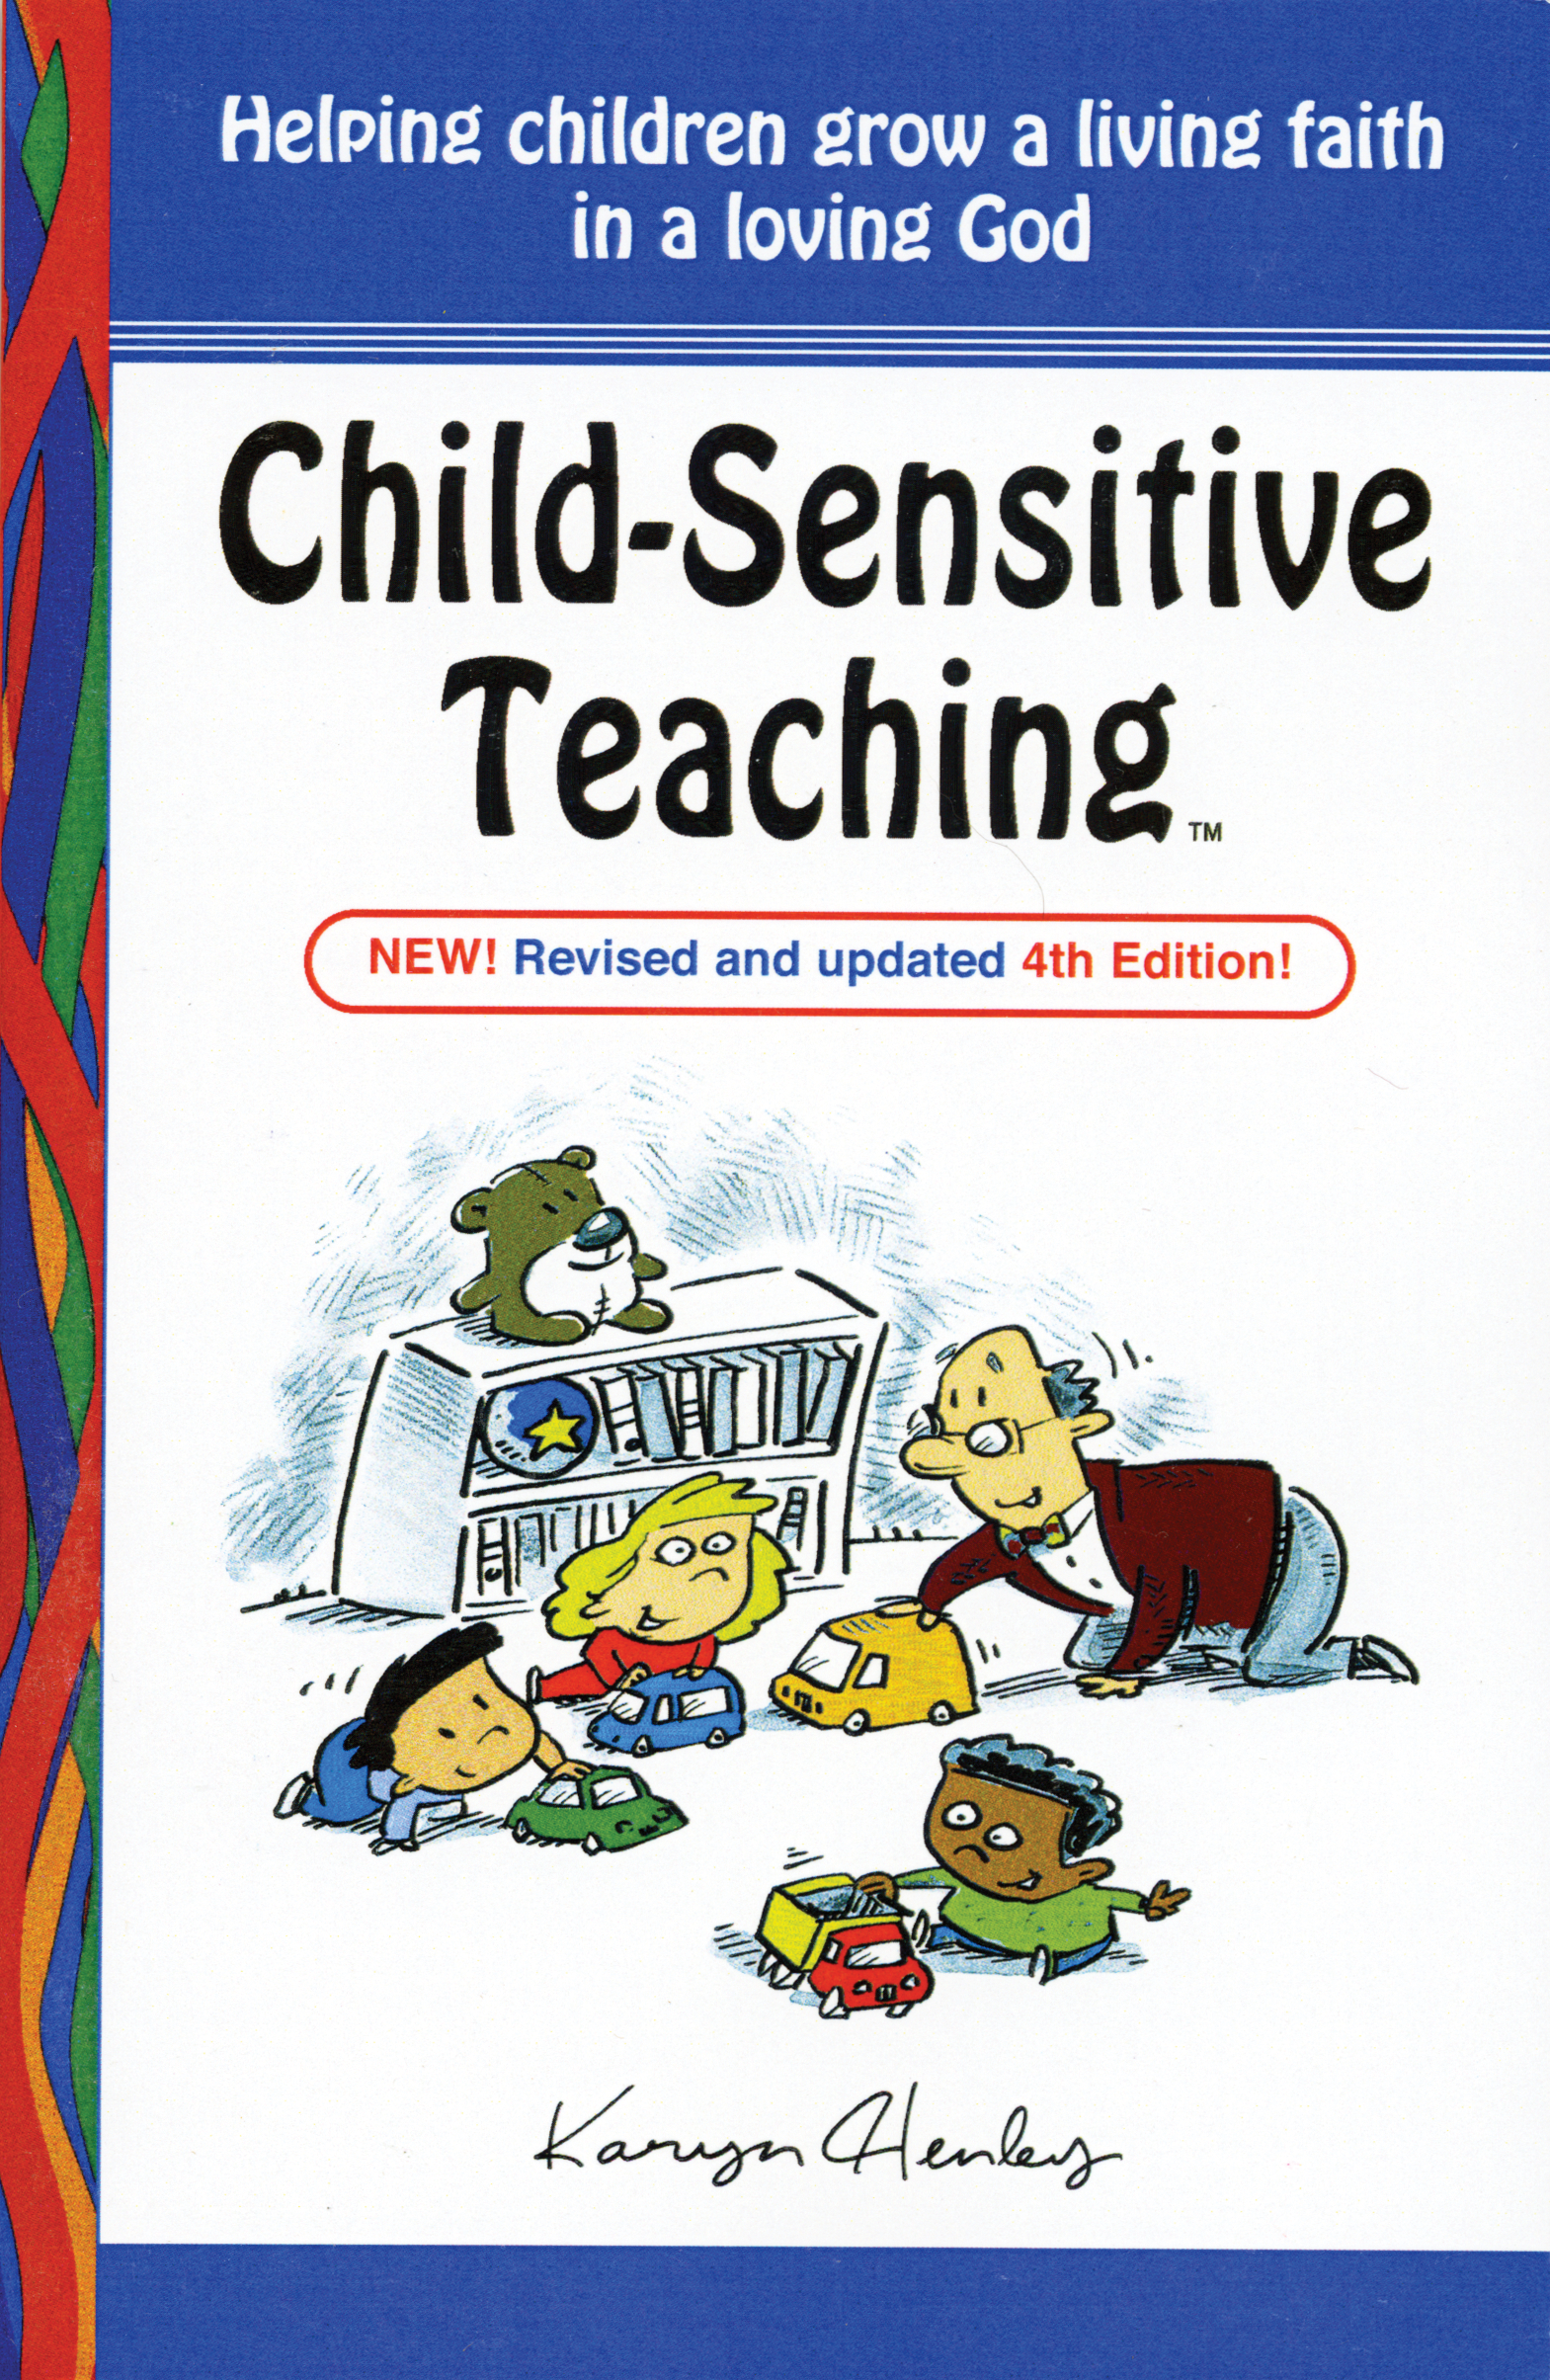 This book focuses on such topics as communicating with young children, individual learning differences, faith development, and more. A work book is also available.